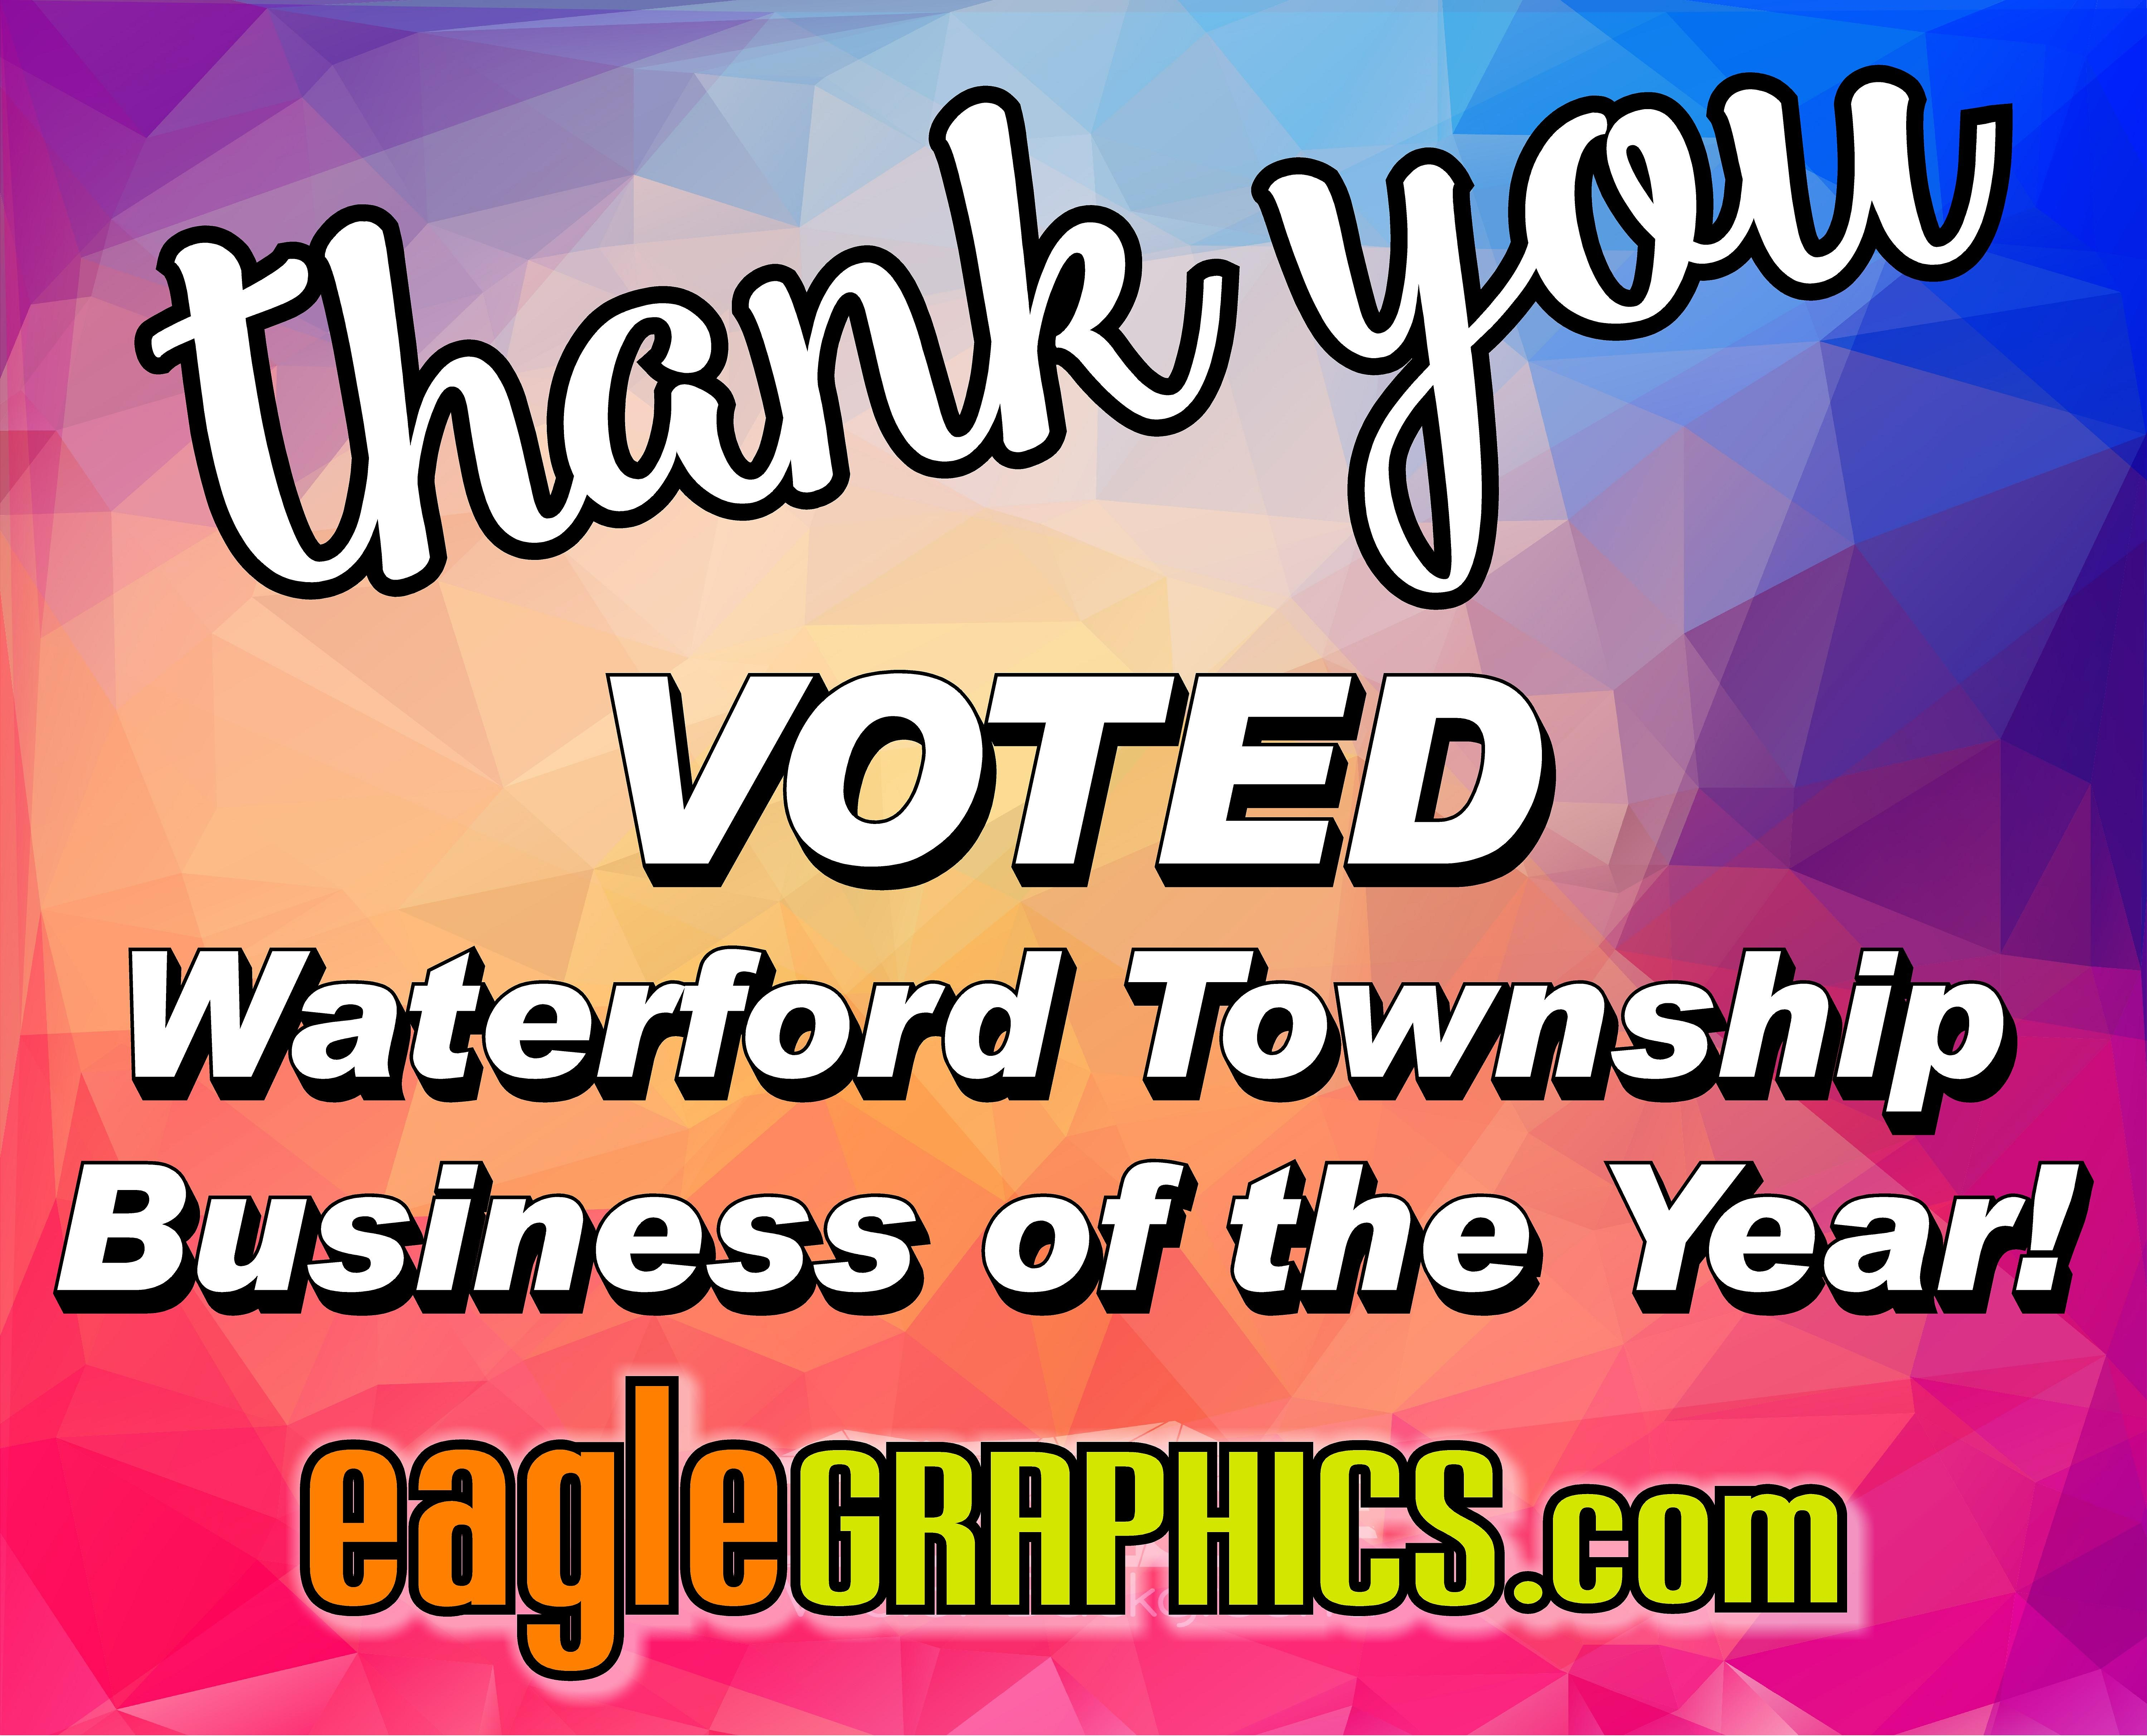 Waterford Business of the Year